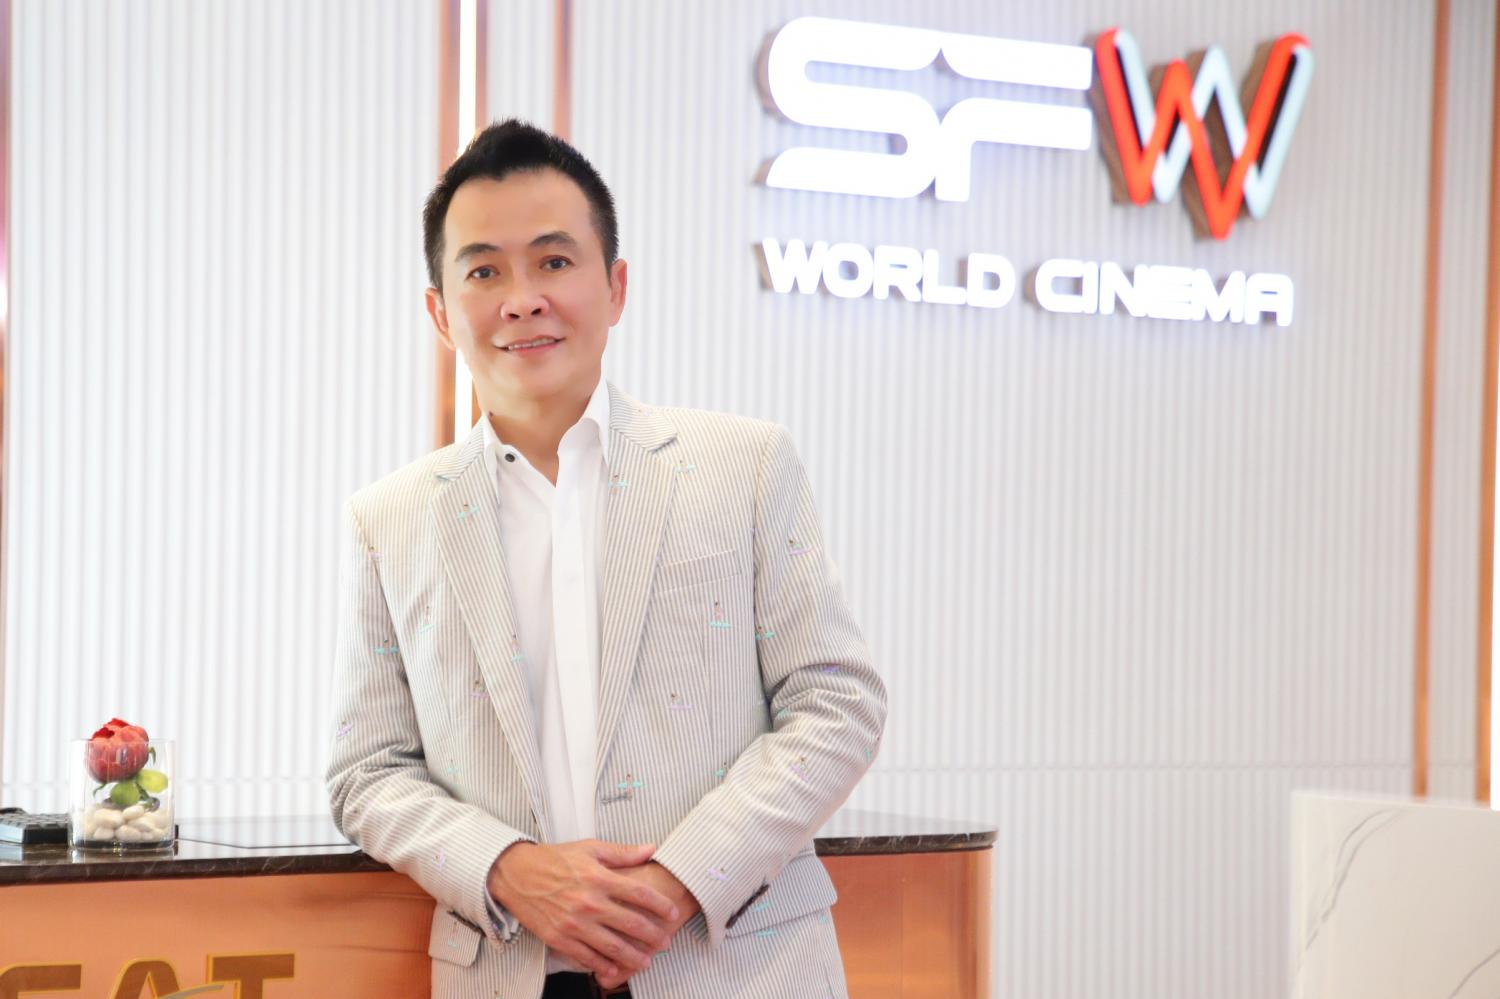 'I believe that the cinema industry will re-emerge and come back faster and more robust than other sectors,' says Suwat Thongrompo, chief executive of SF Corporation.